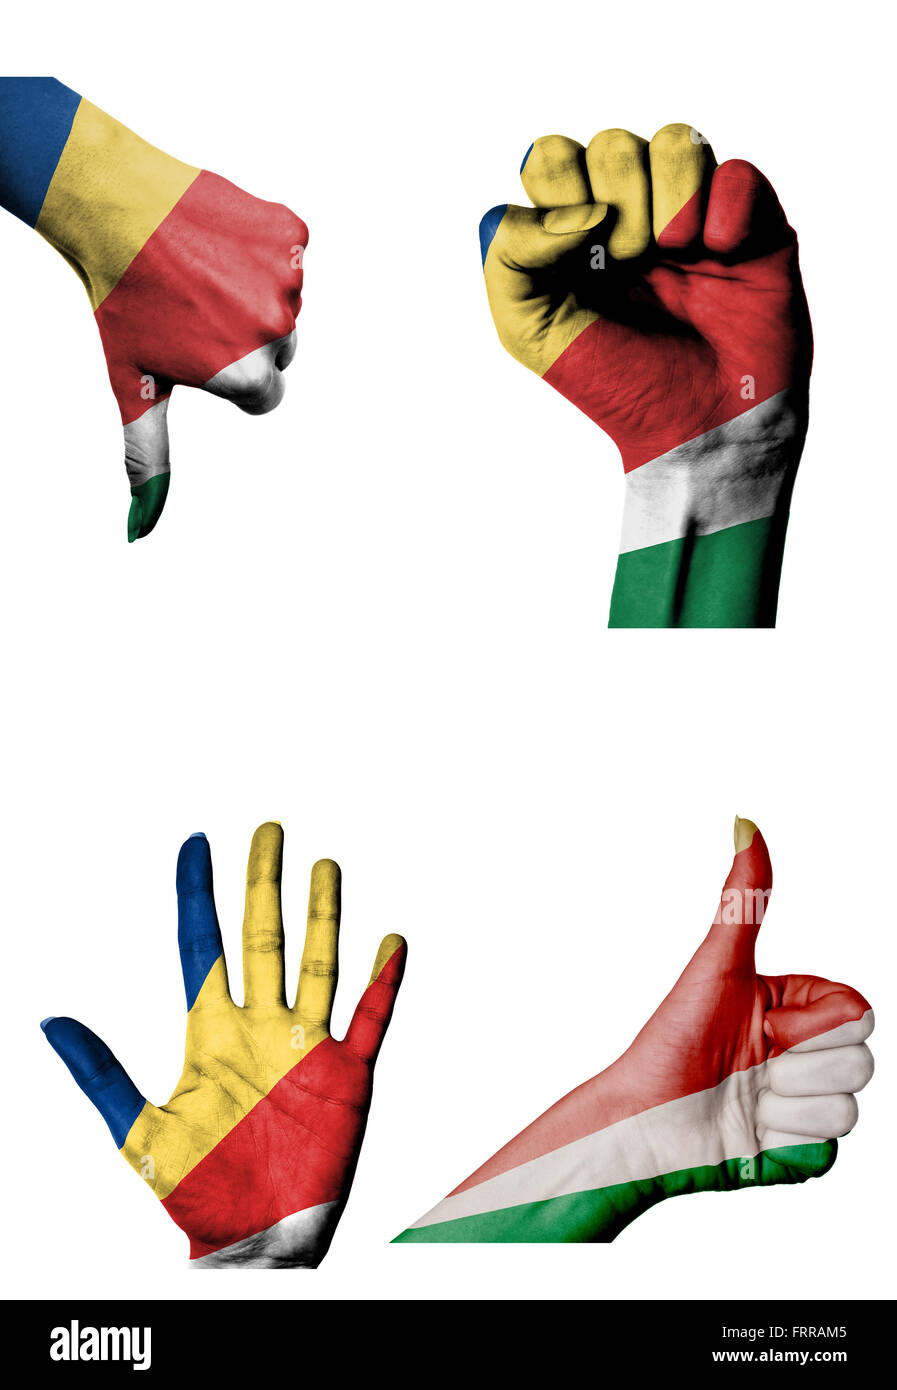 hands with multiple gestures (open palm, closed fist, thumbs up and down) with Seychelles flag painted isolated - Stock Image